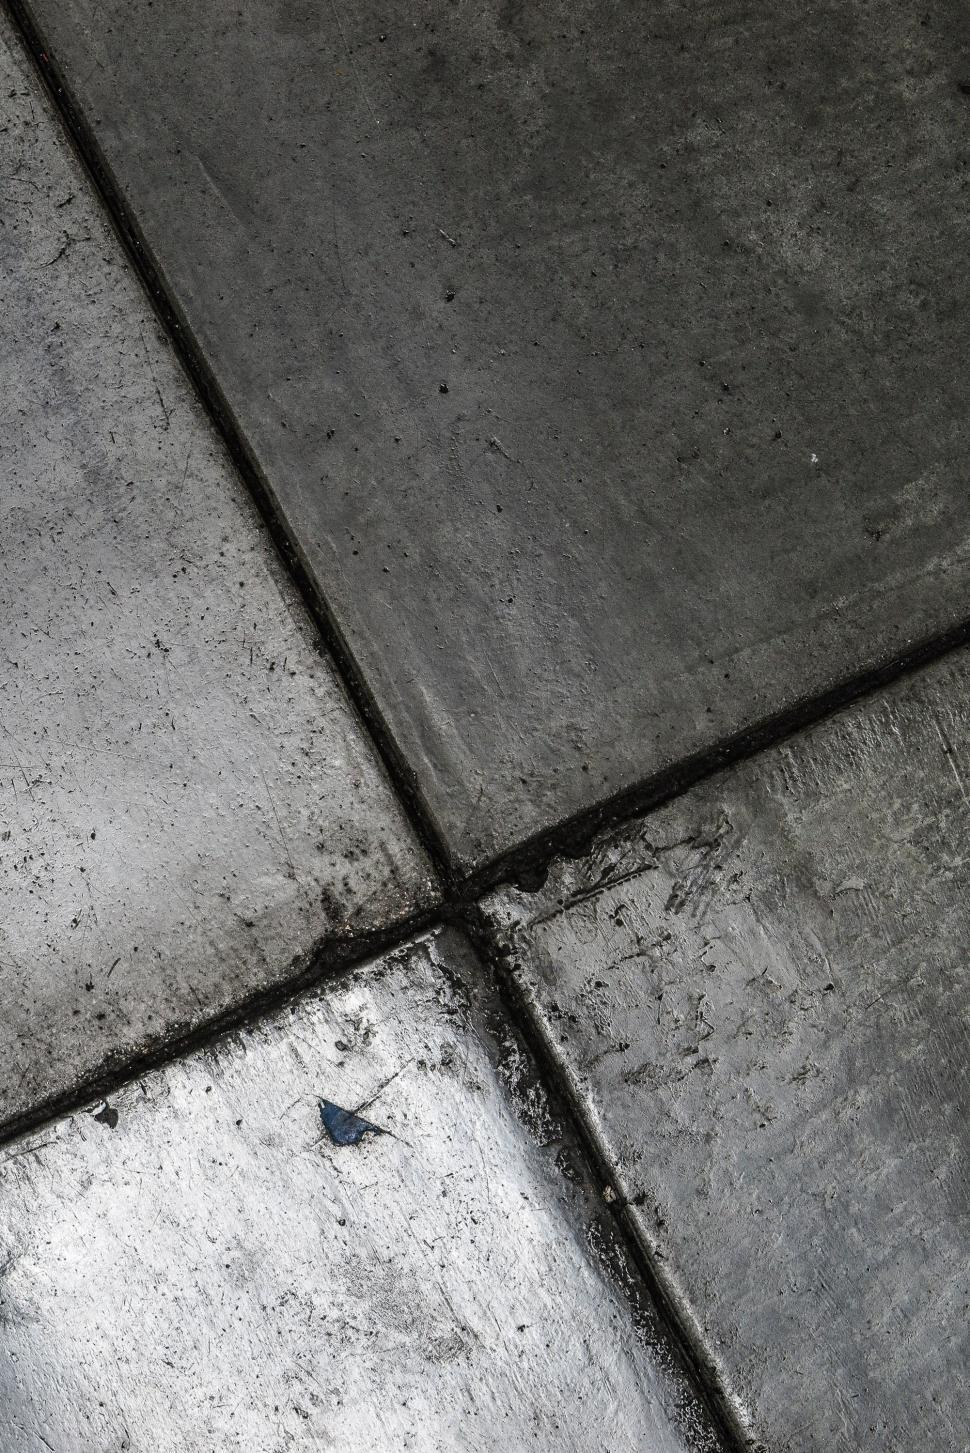 Download Free Stock HD Photo of Concrete corners Online